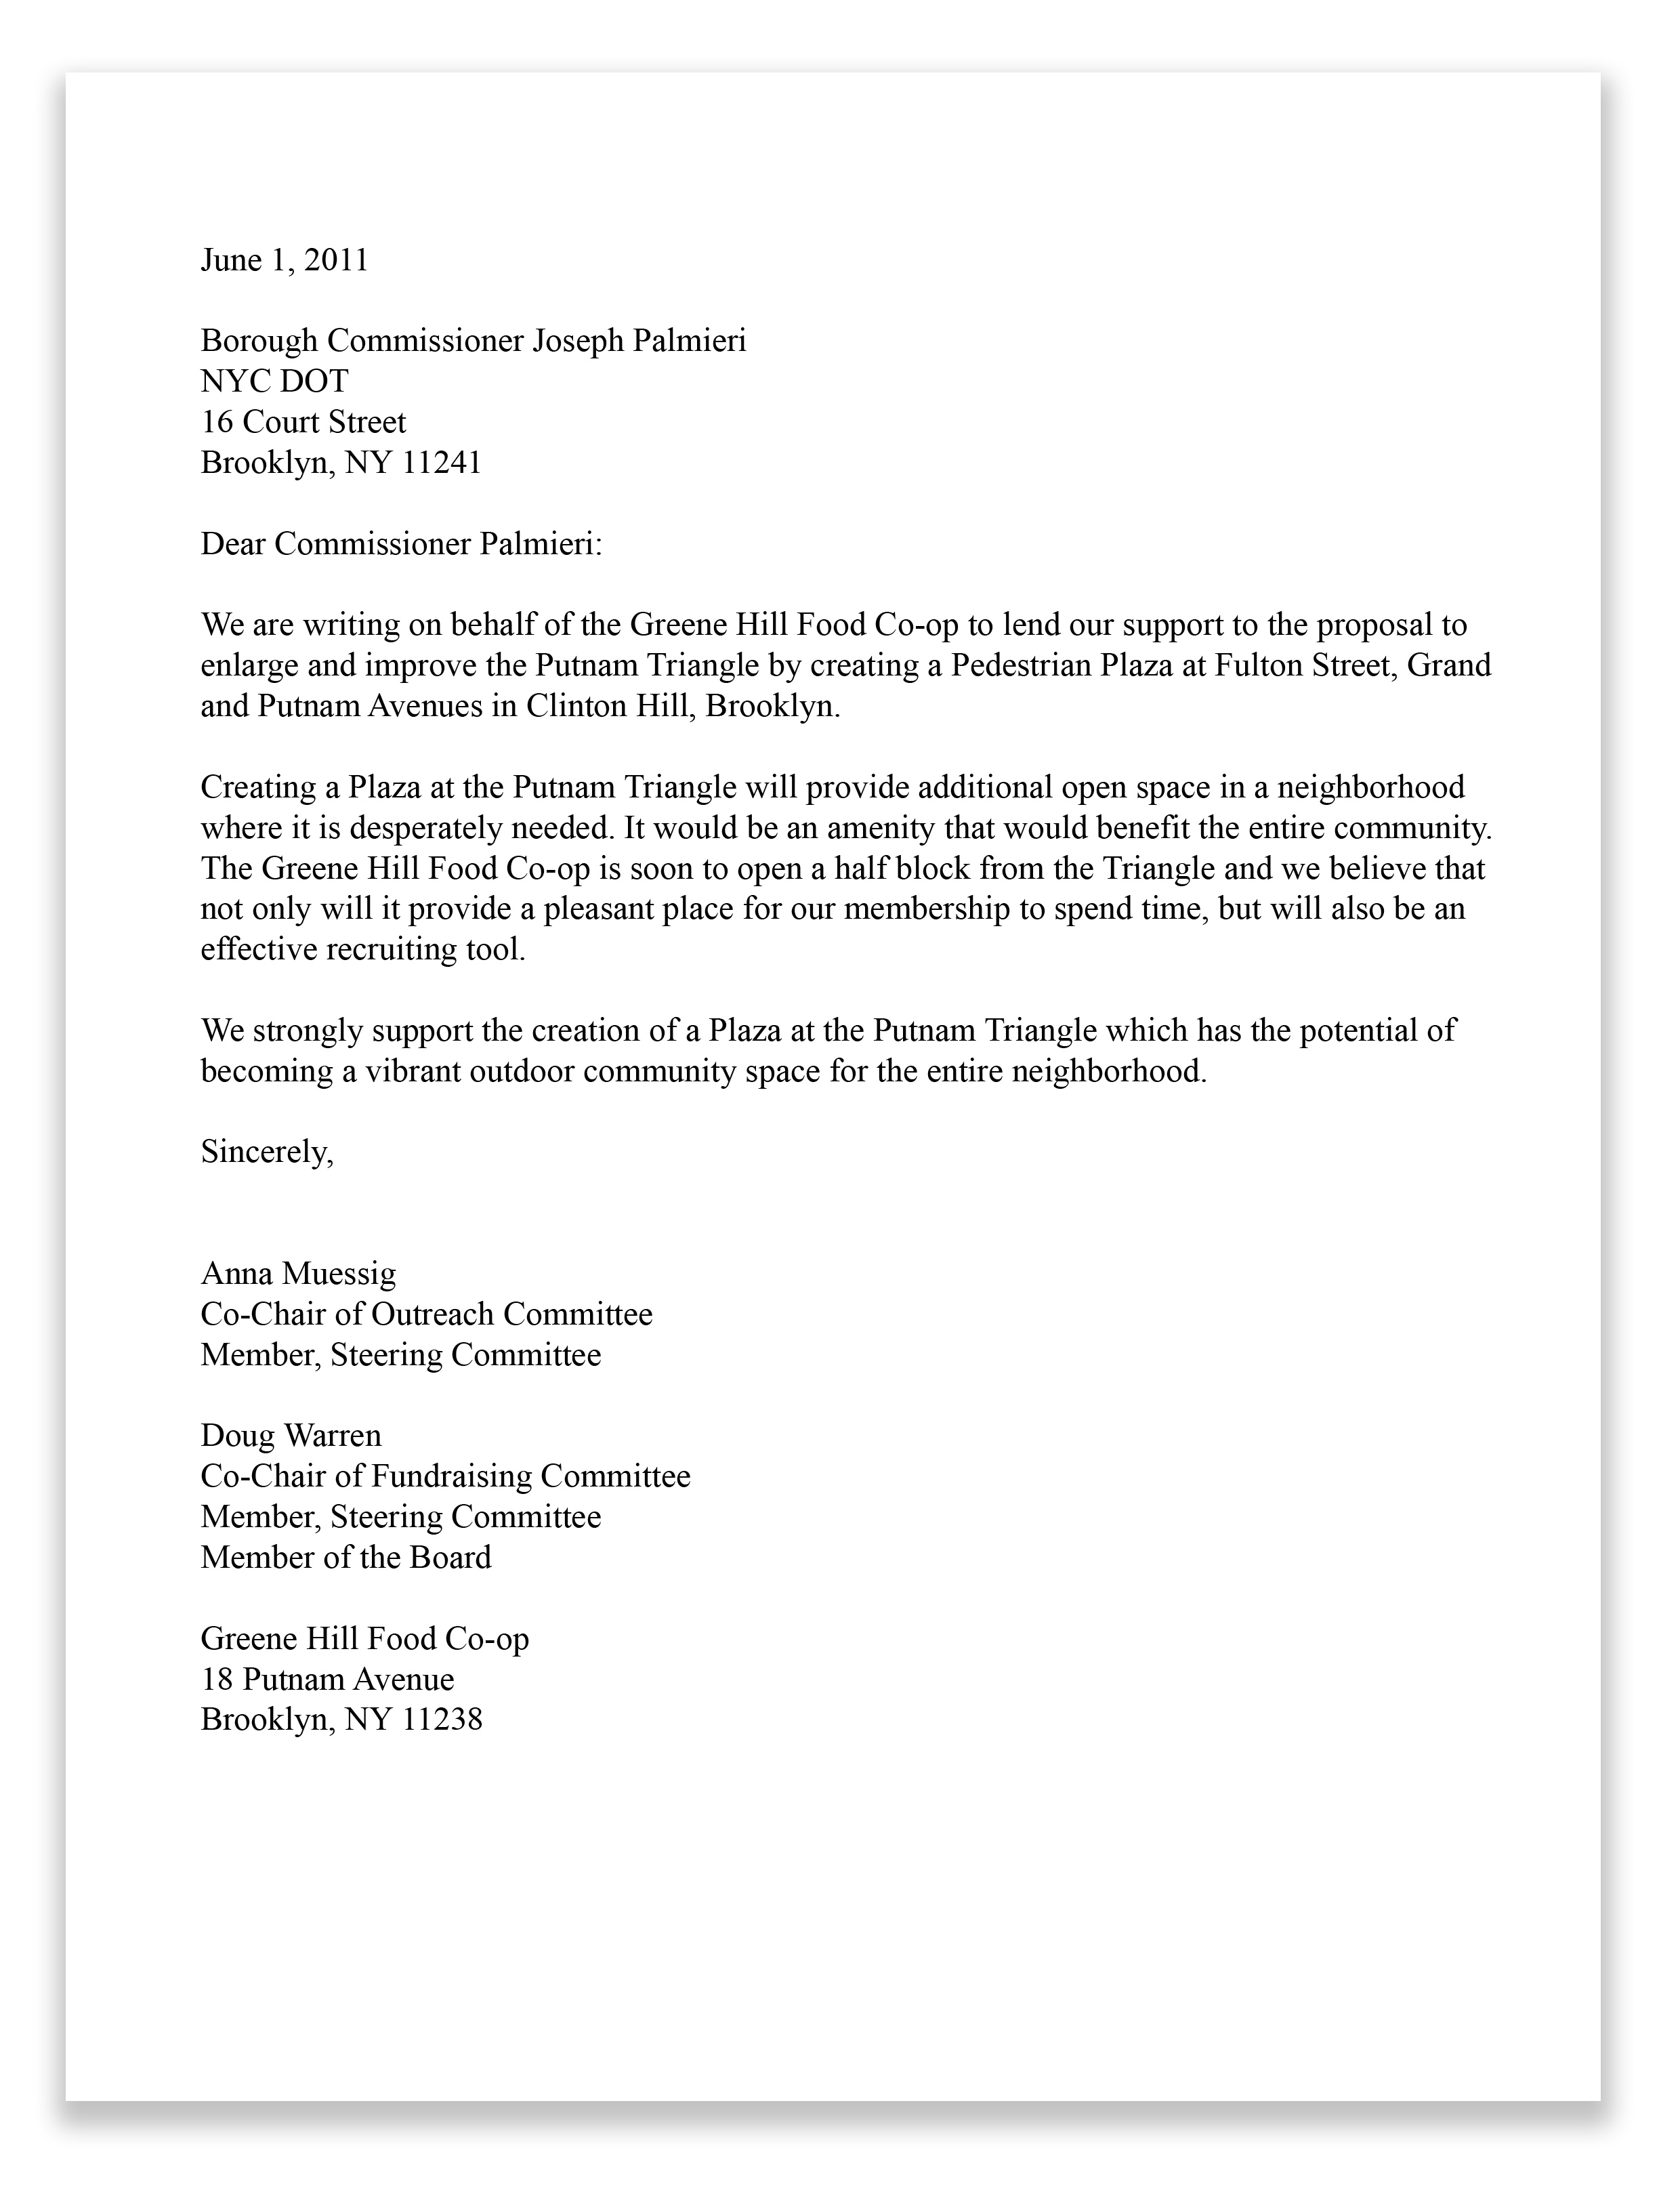 Sample Business Letters And Forms 4hb Greene Hill Food Buying Club Letter Supporting Plaza As